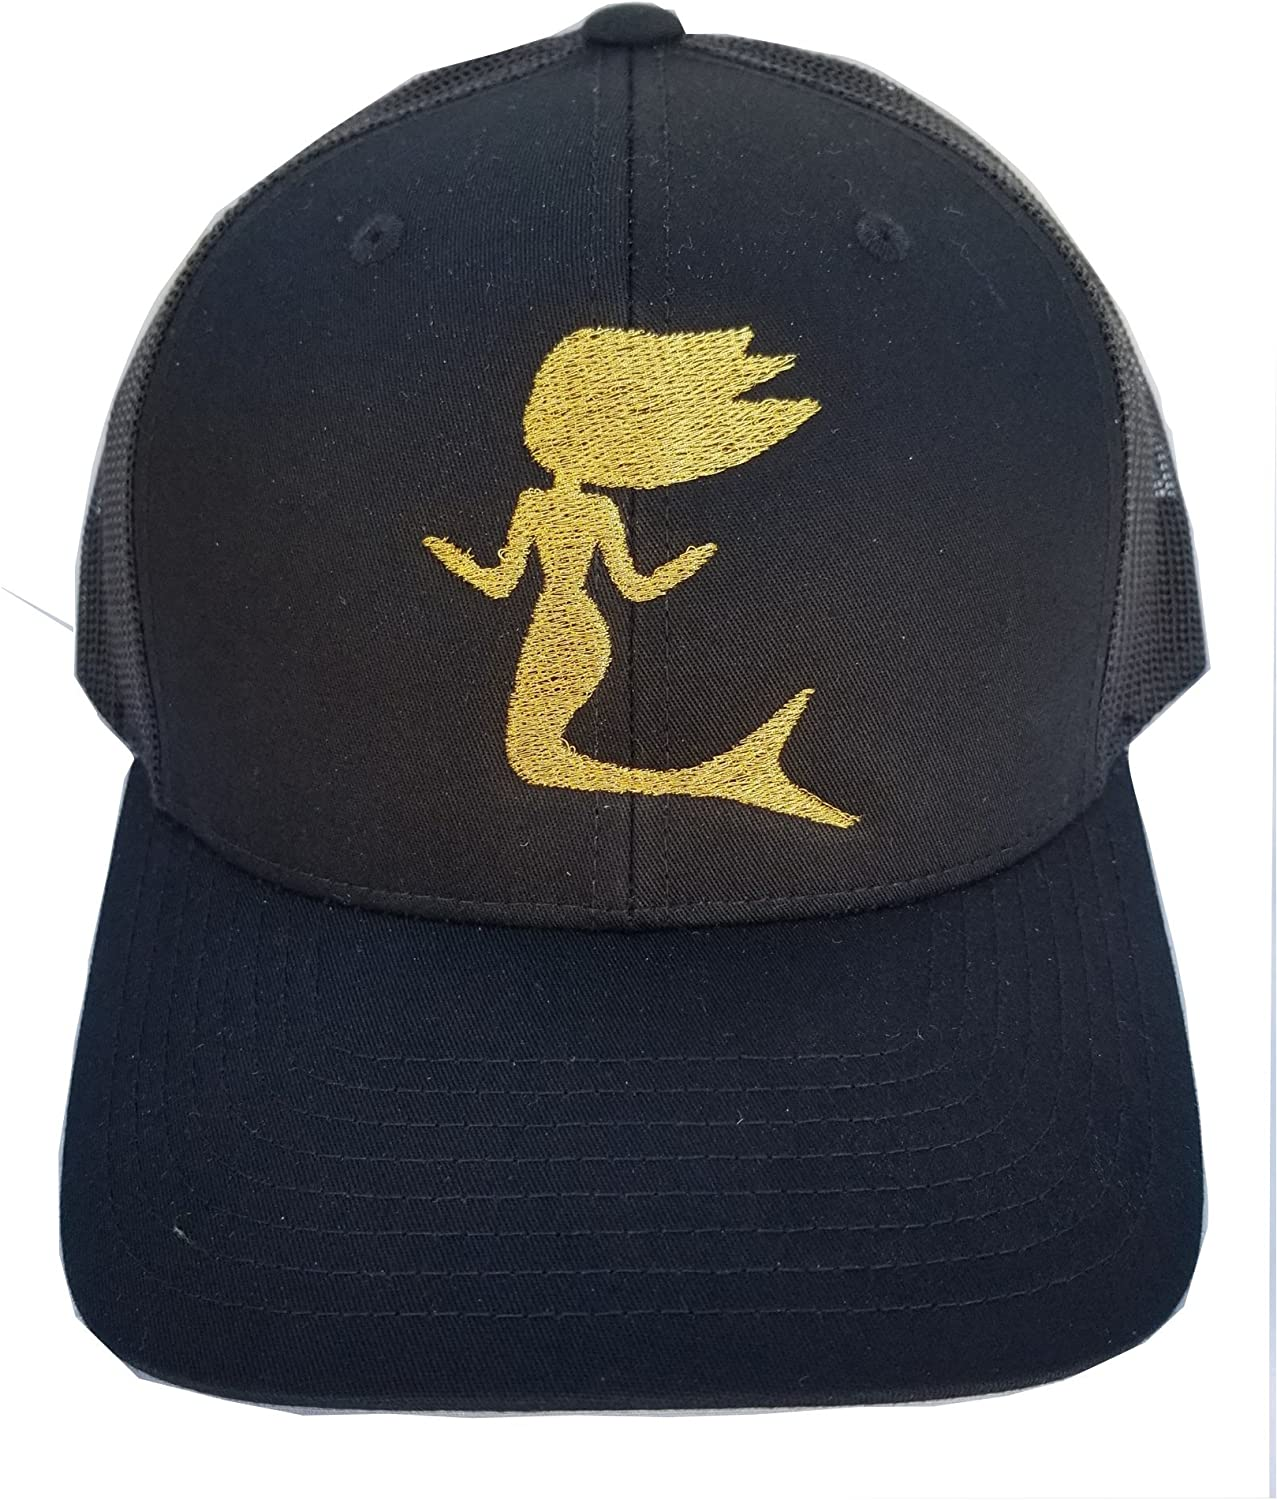 Mermaid Trucker Hat Black and gold